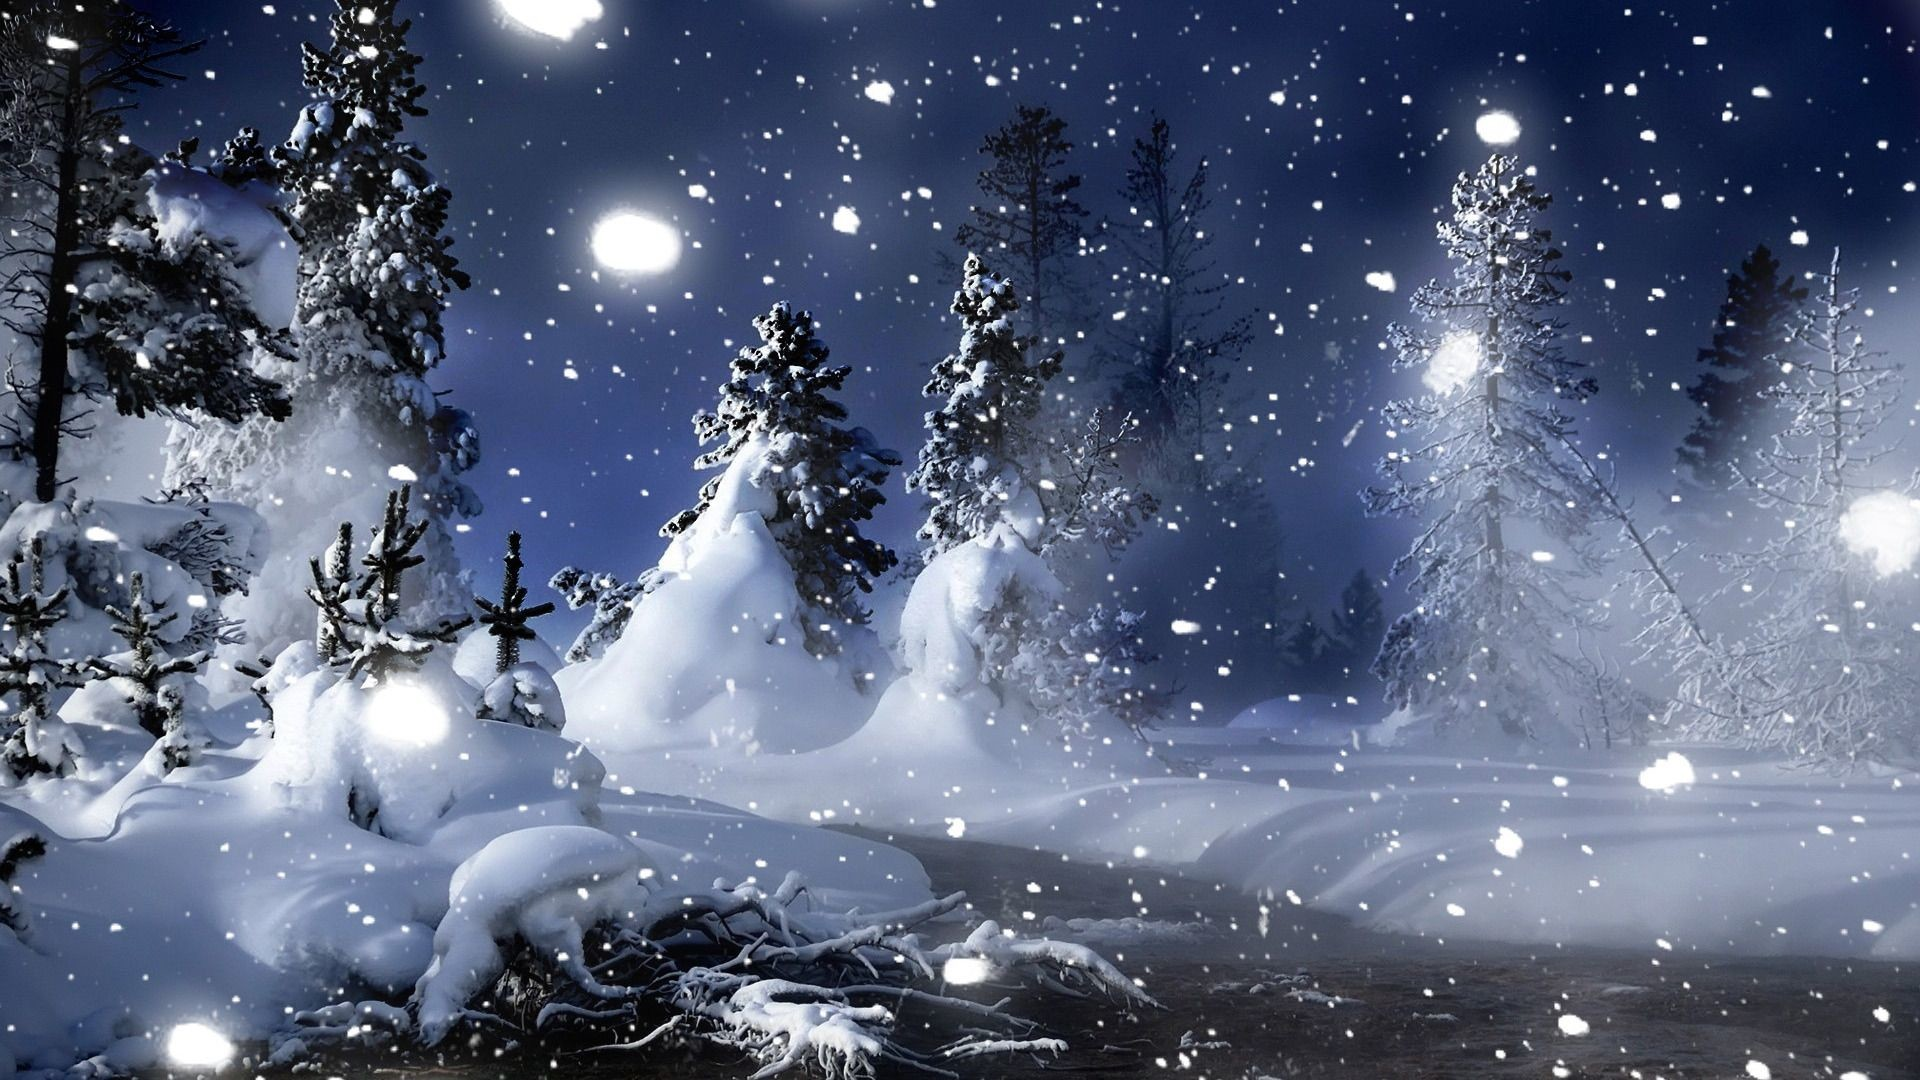 Animated Snow Falling Wallpaper 60 images